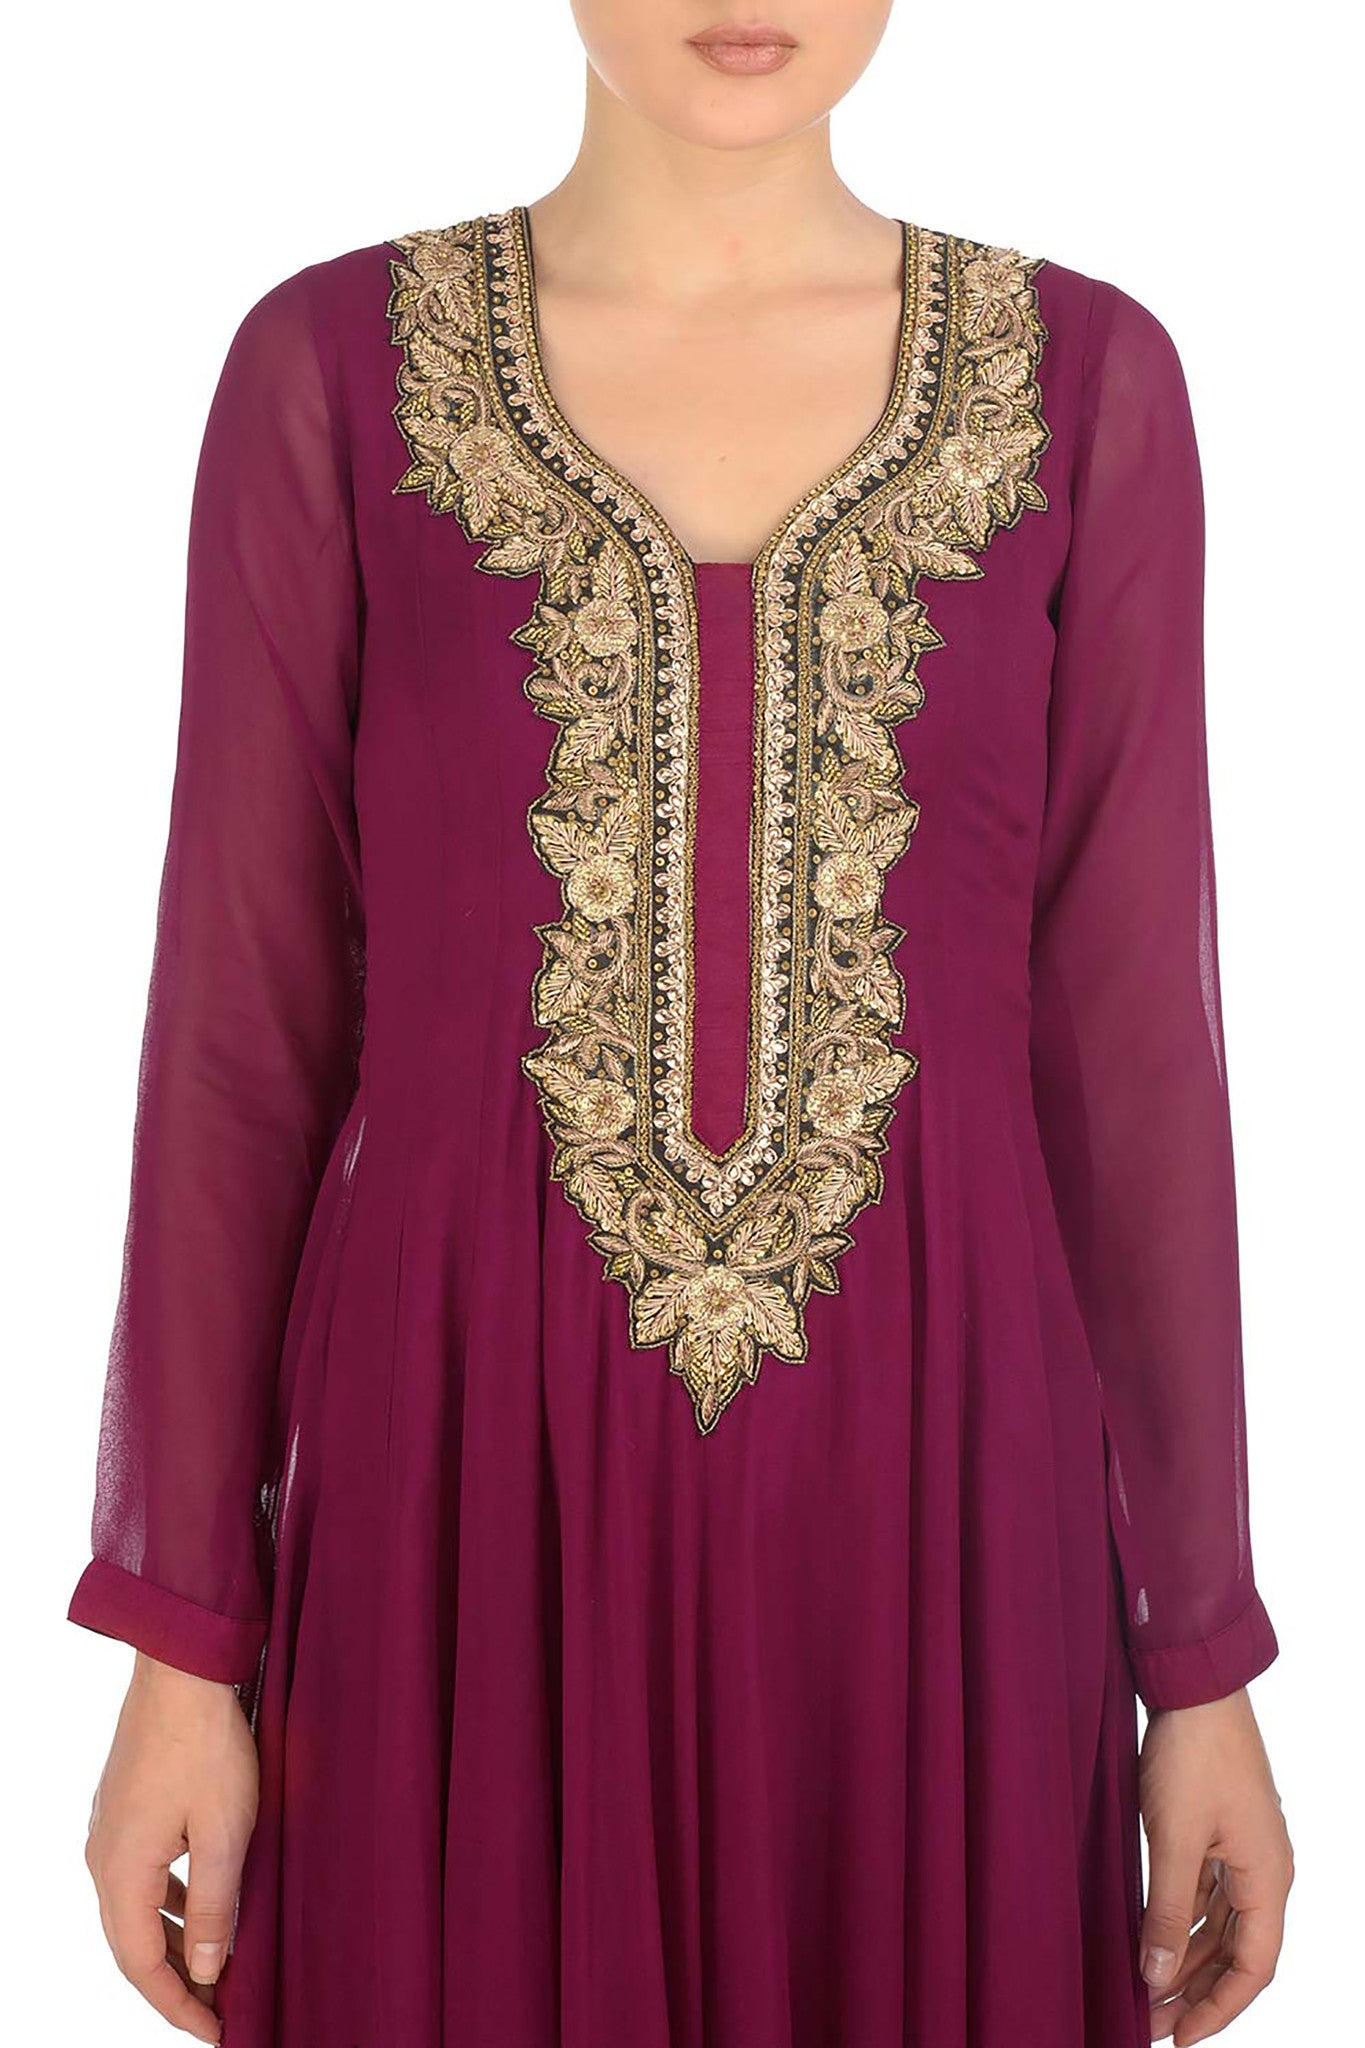 Plum & Gold Kurta Close Up